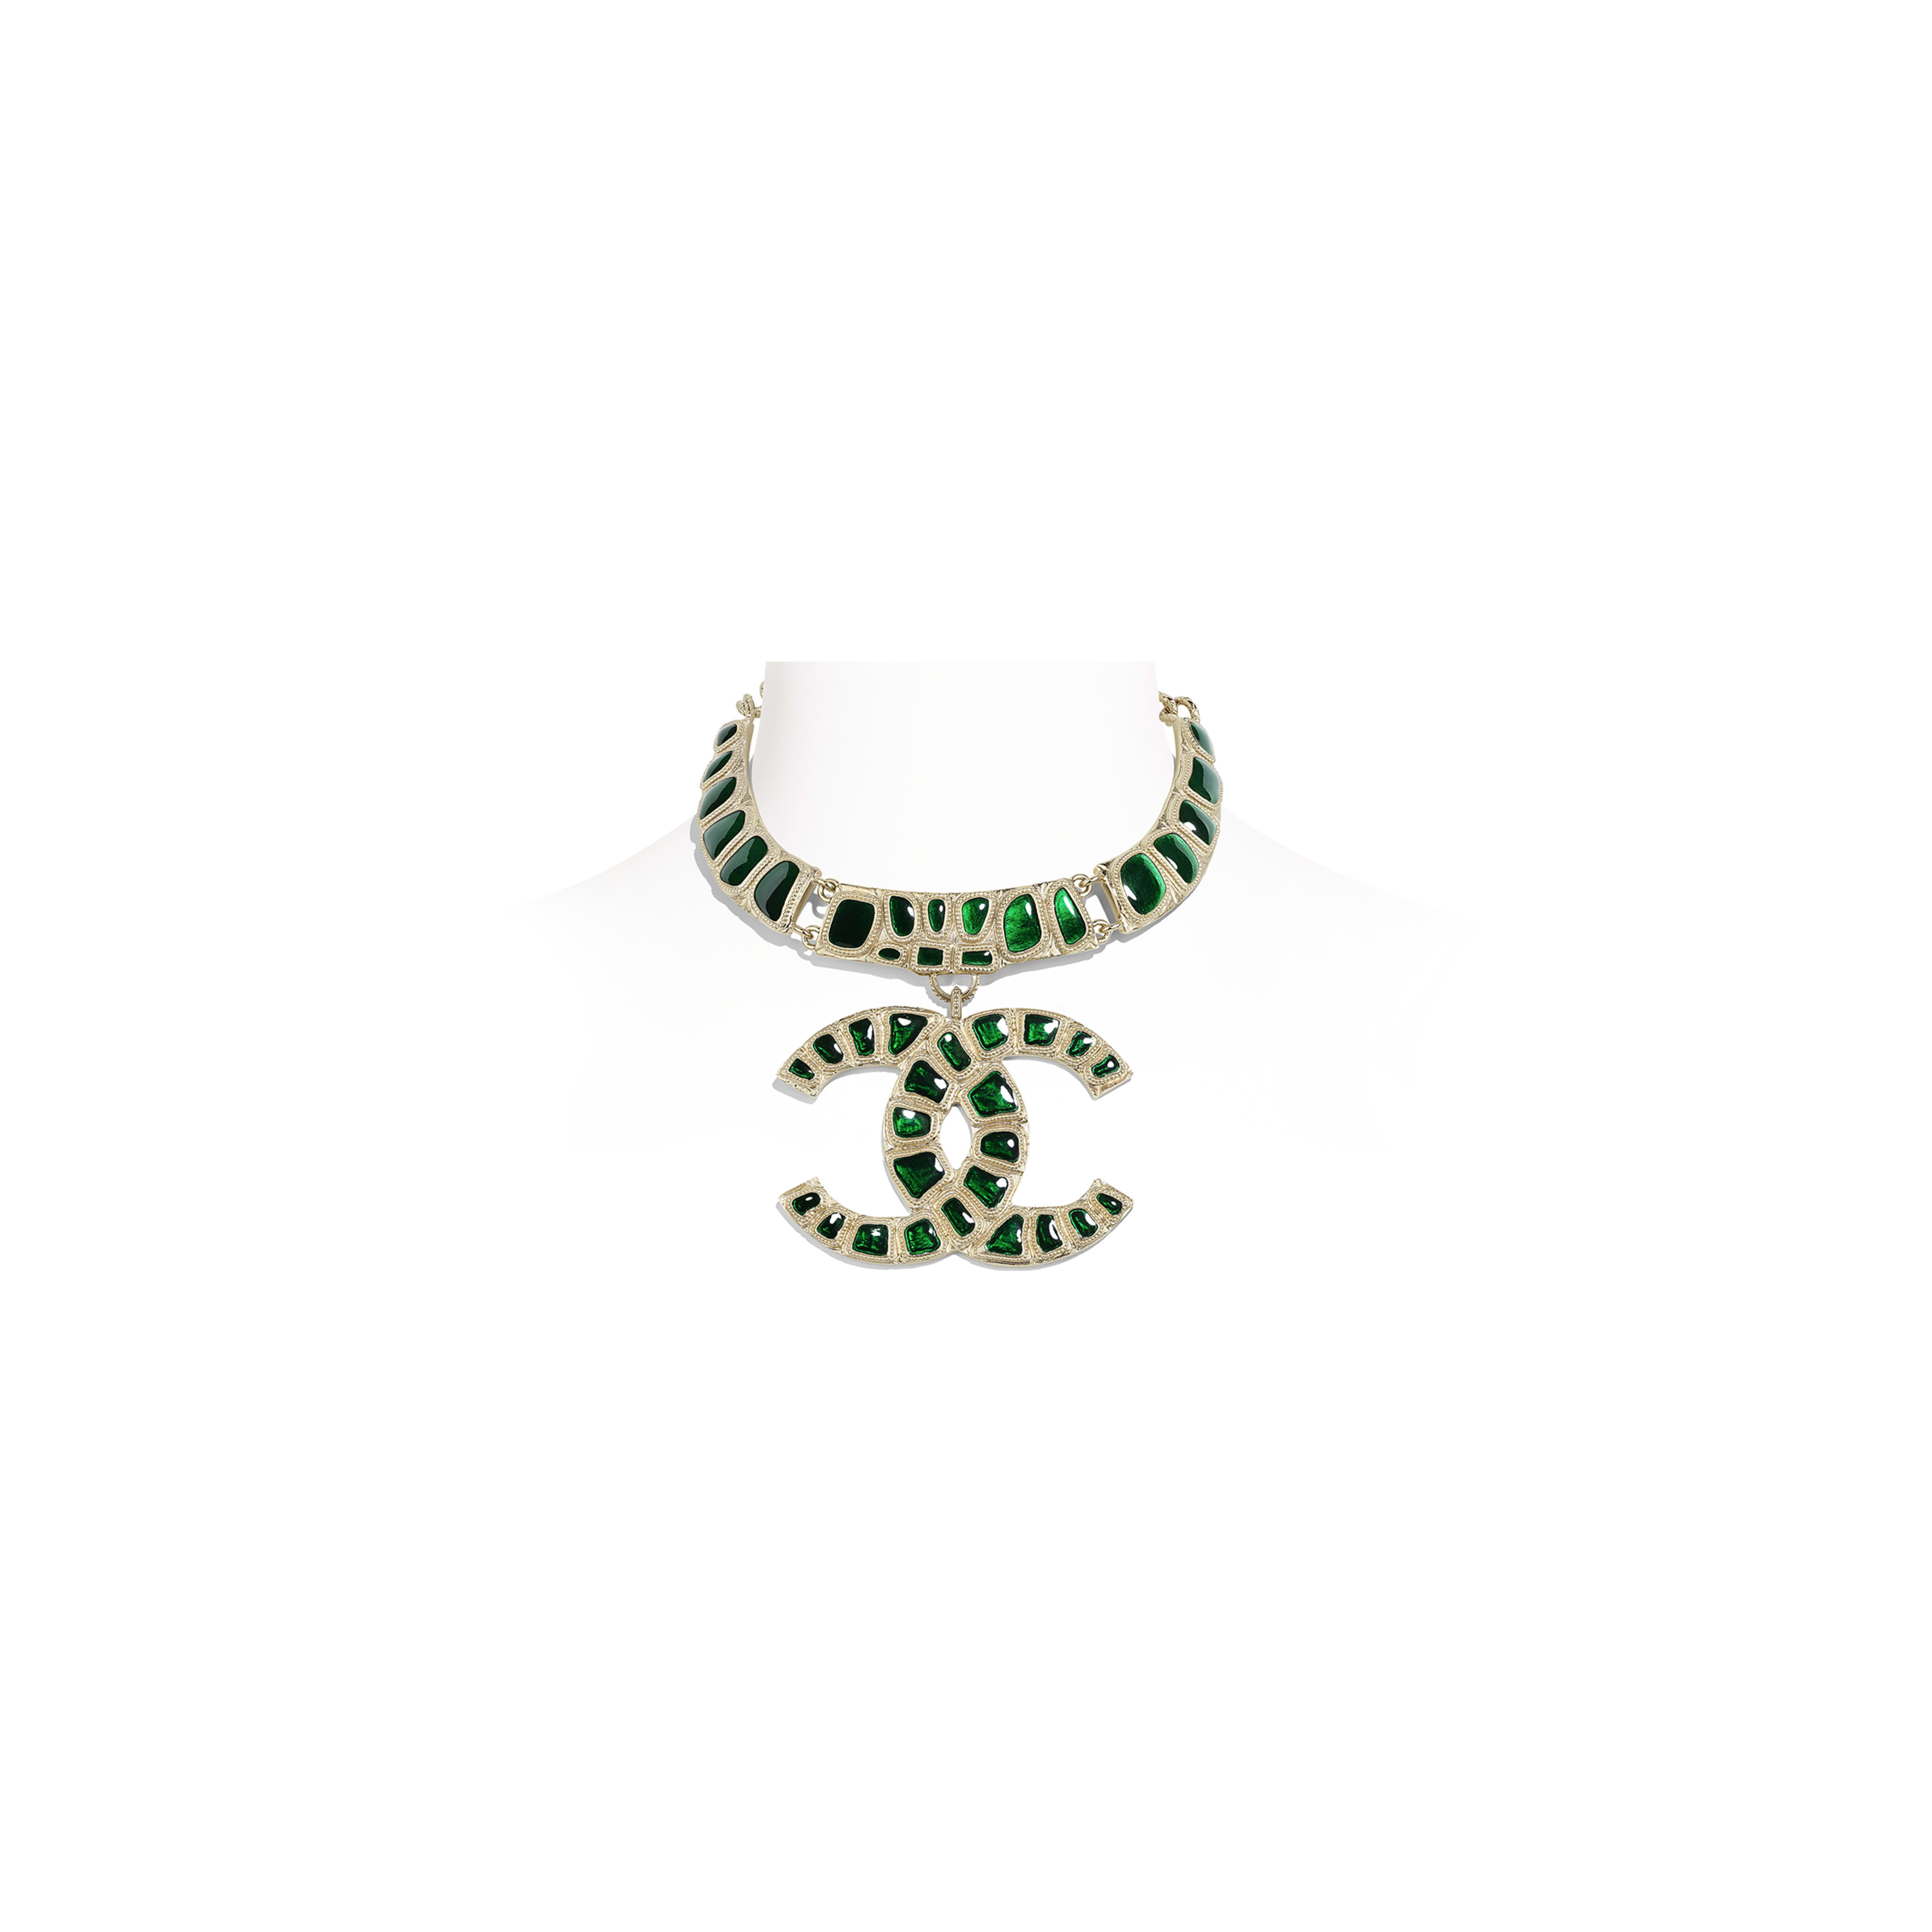 Necklace - Gold & Green - Metal & Resin - Default view - see full sized version